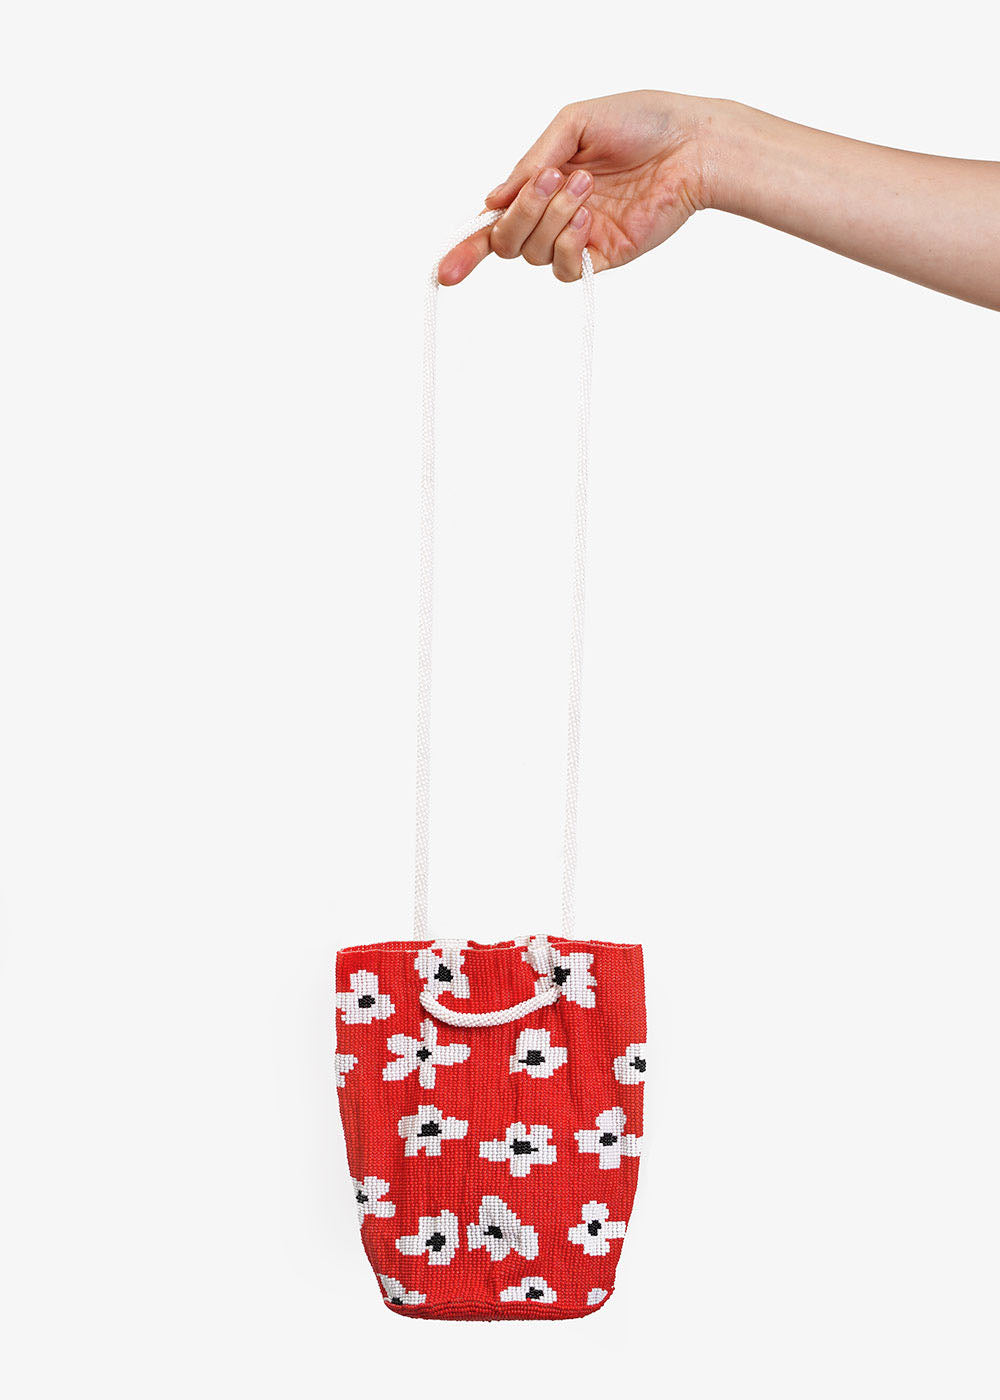 Pura Utz Red Flower Beaded Bag — Shop sustainable fashion and slow fashion at New Classics Studios